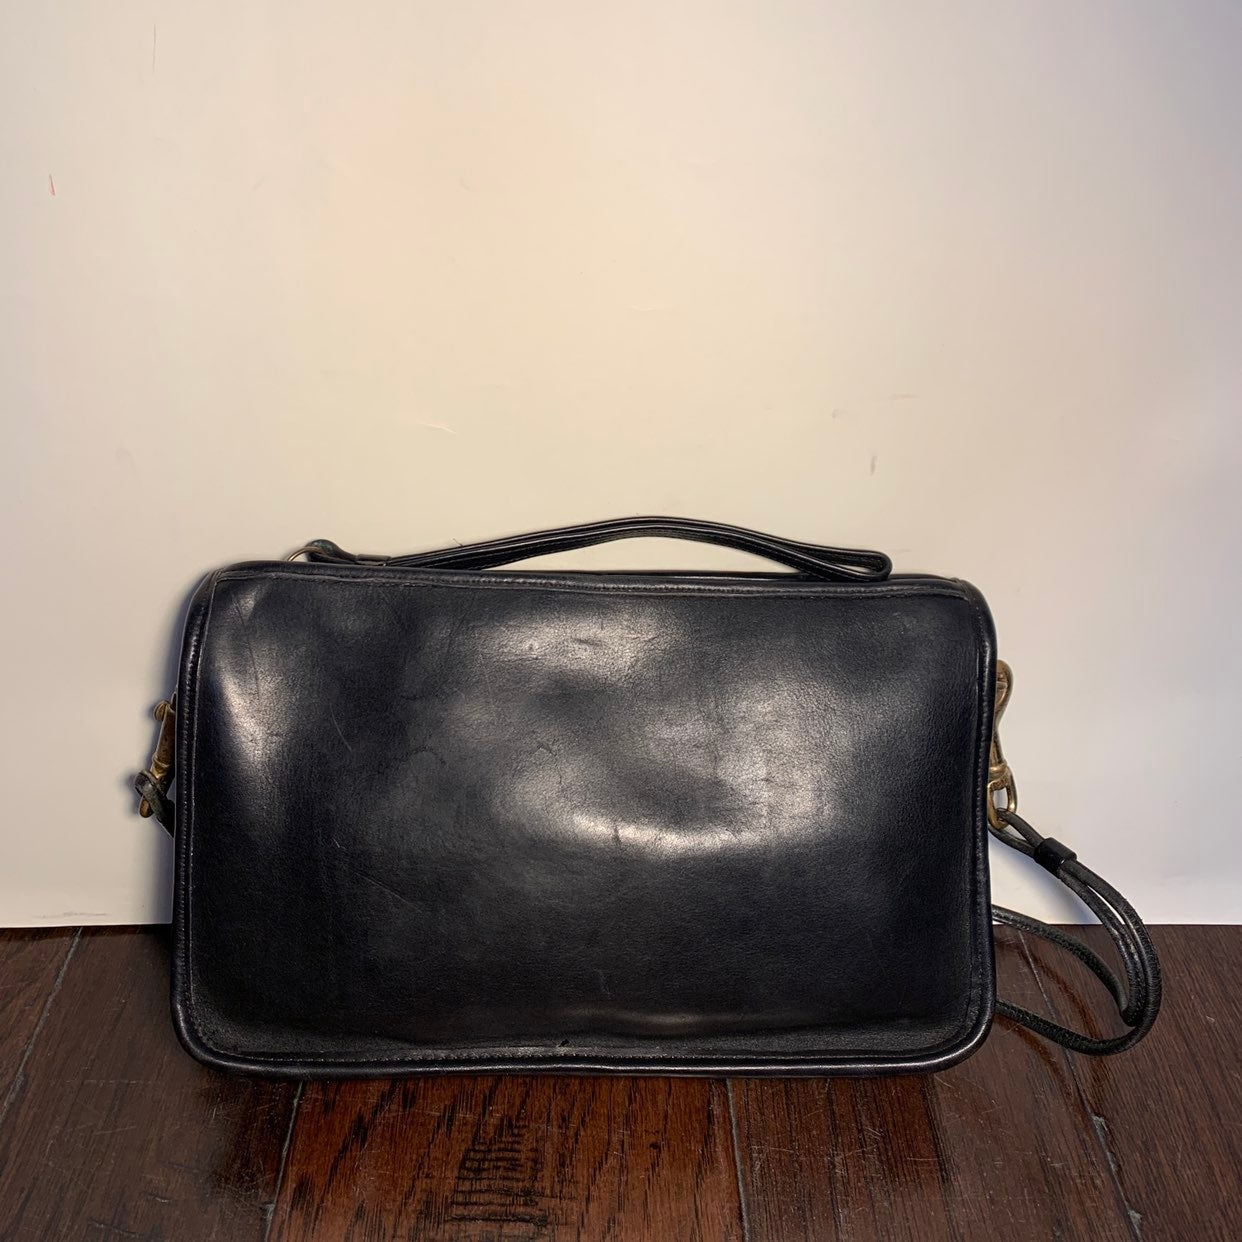 Vintage 80's Coach # 1712 Crossbody Bag